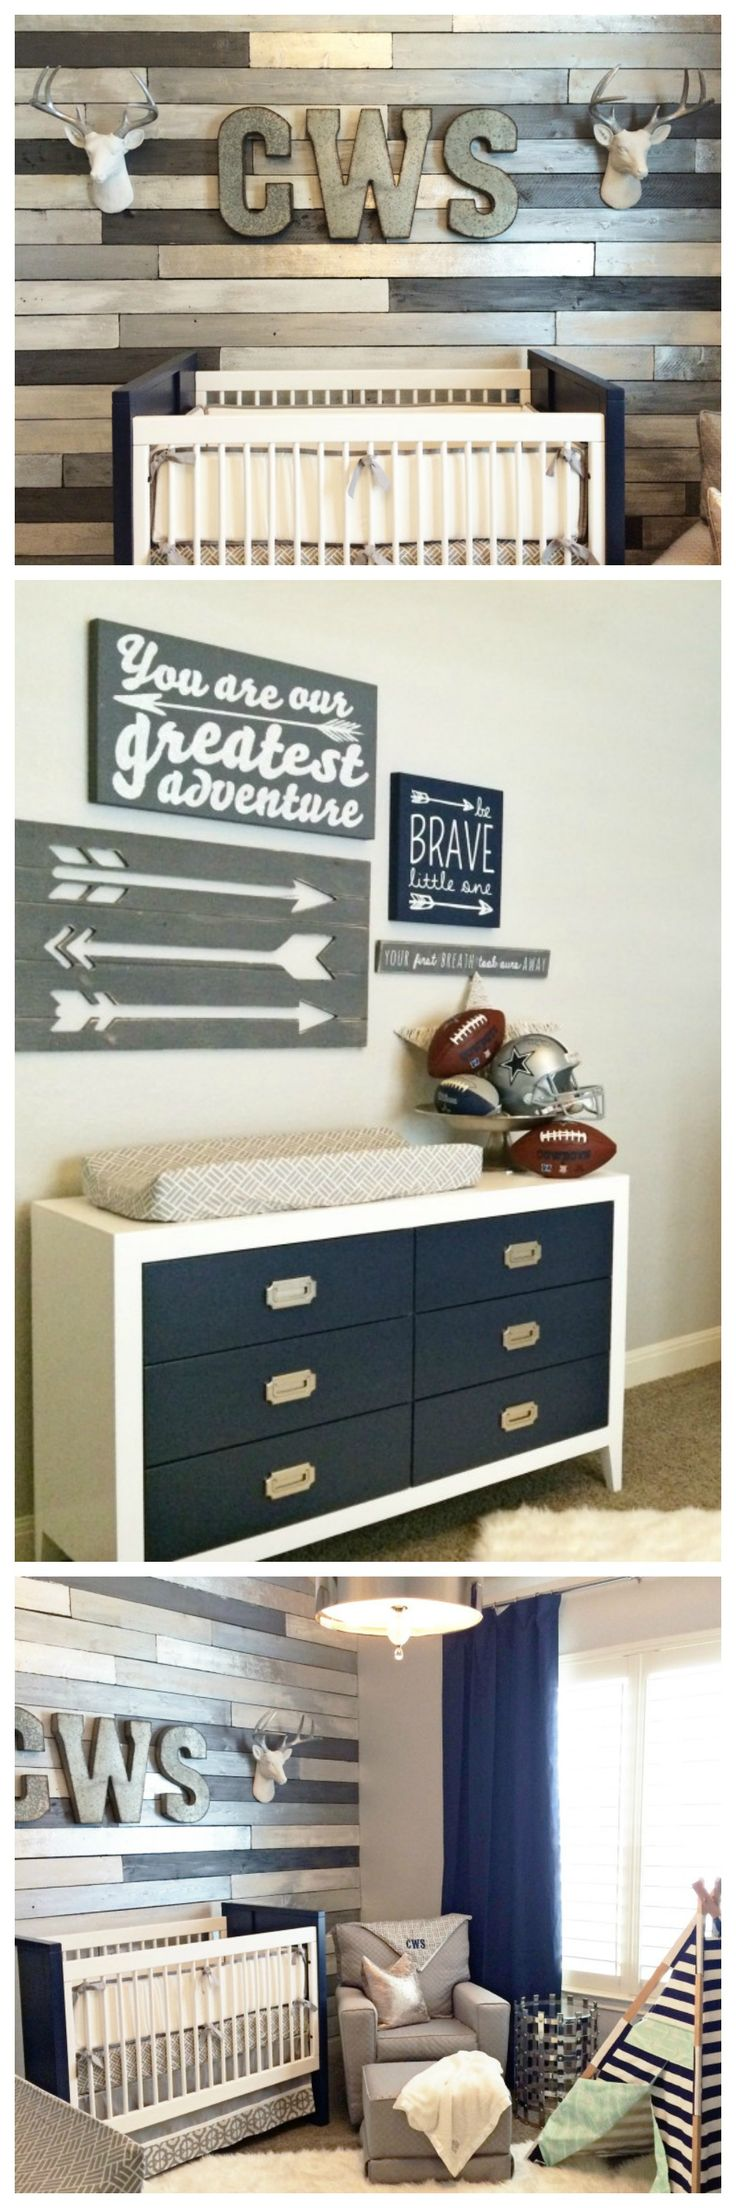 Wooden Wall Decor For Nursery : Best ideas about arrow nursery on